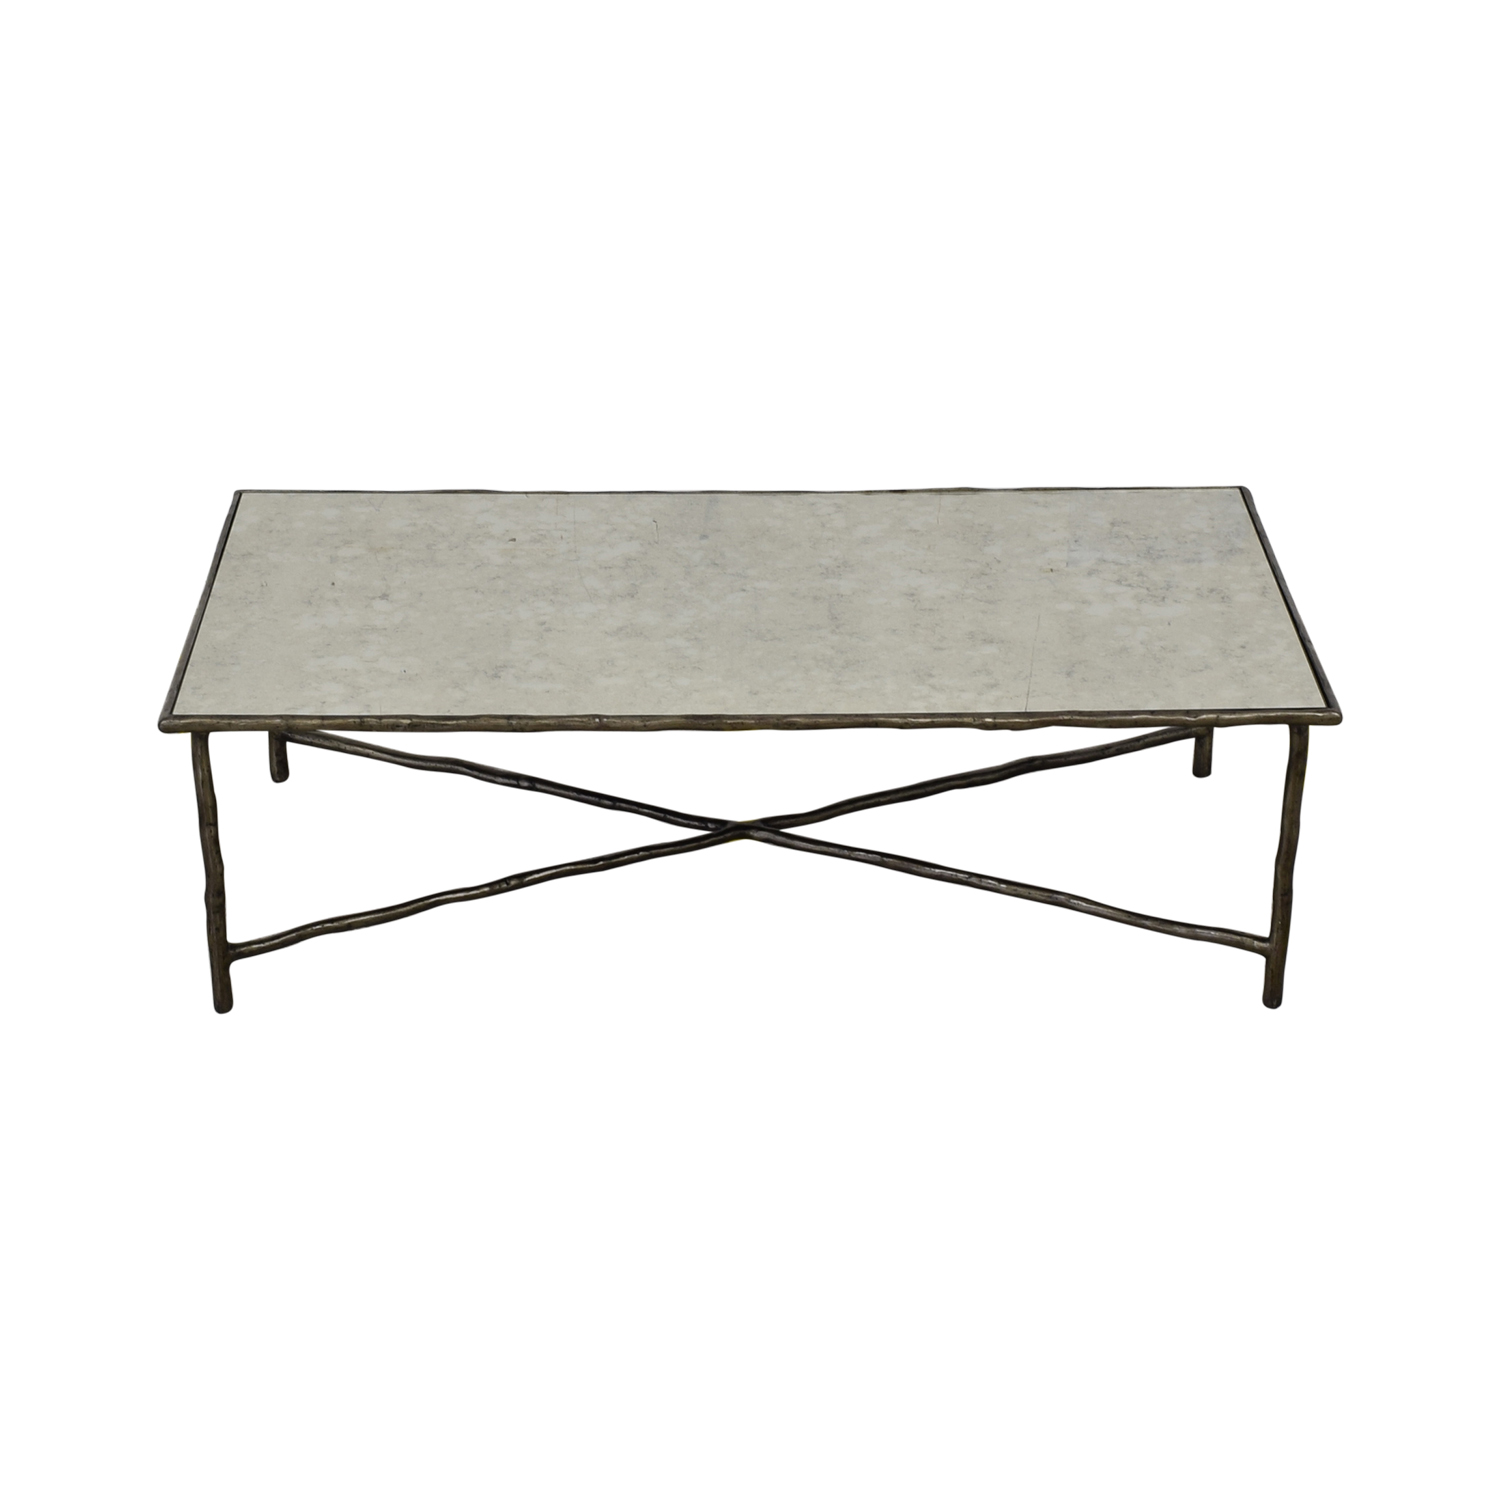 Astounding 79 Off Carlyle Carlyle Mirror Top Coffee Table Tables Ncnpc Chair Design For Home Ncnpcorg